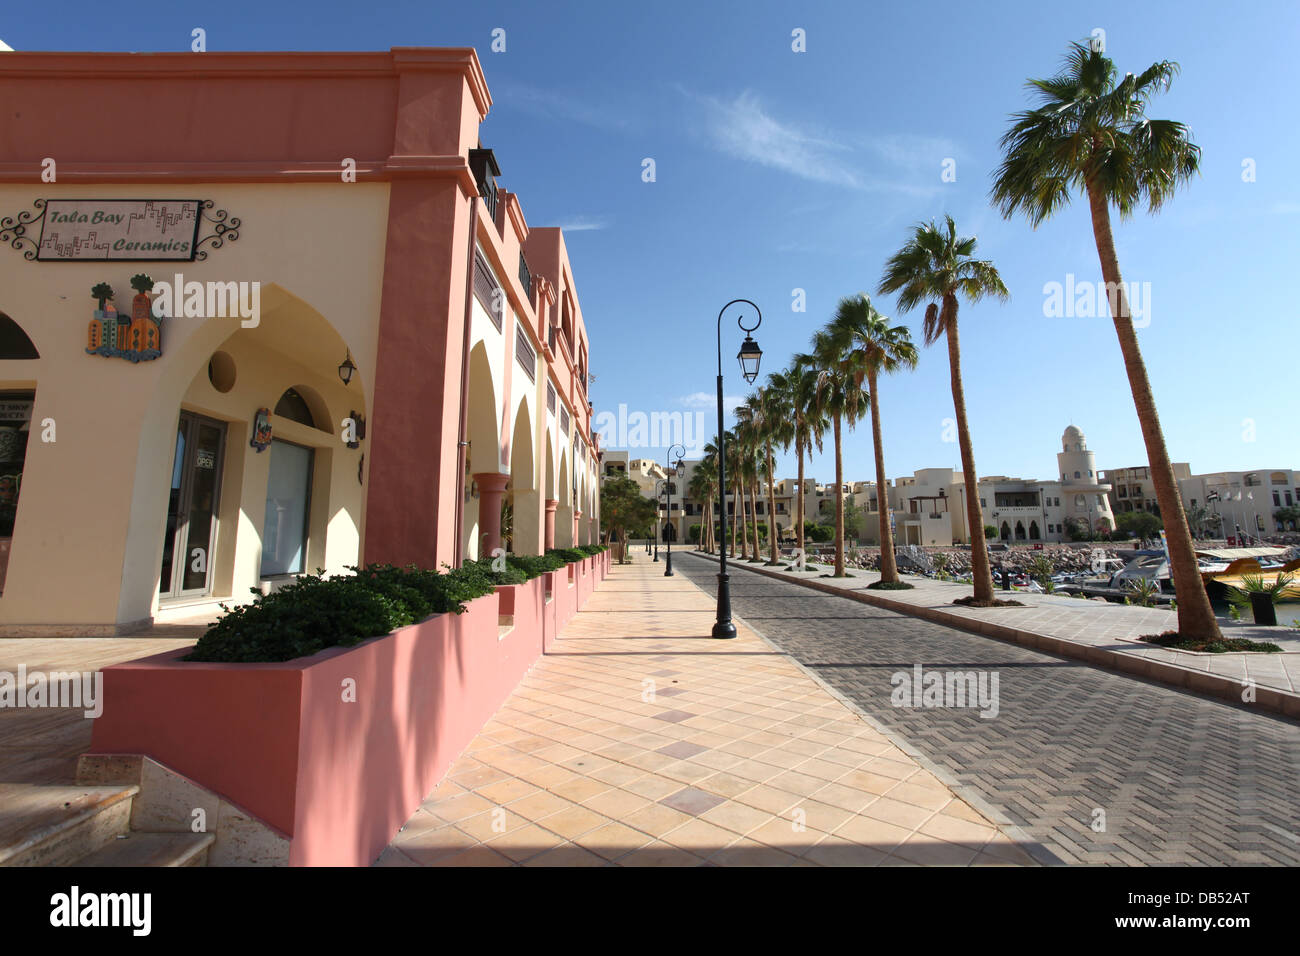 Jordan, Aqaba, Tala Bay Luxury Beach Resort  - Stock Image